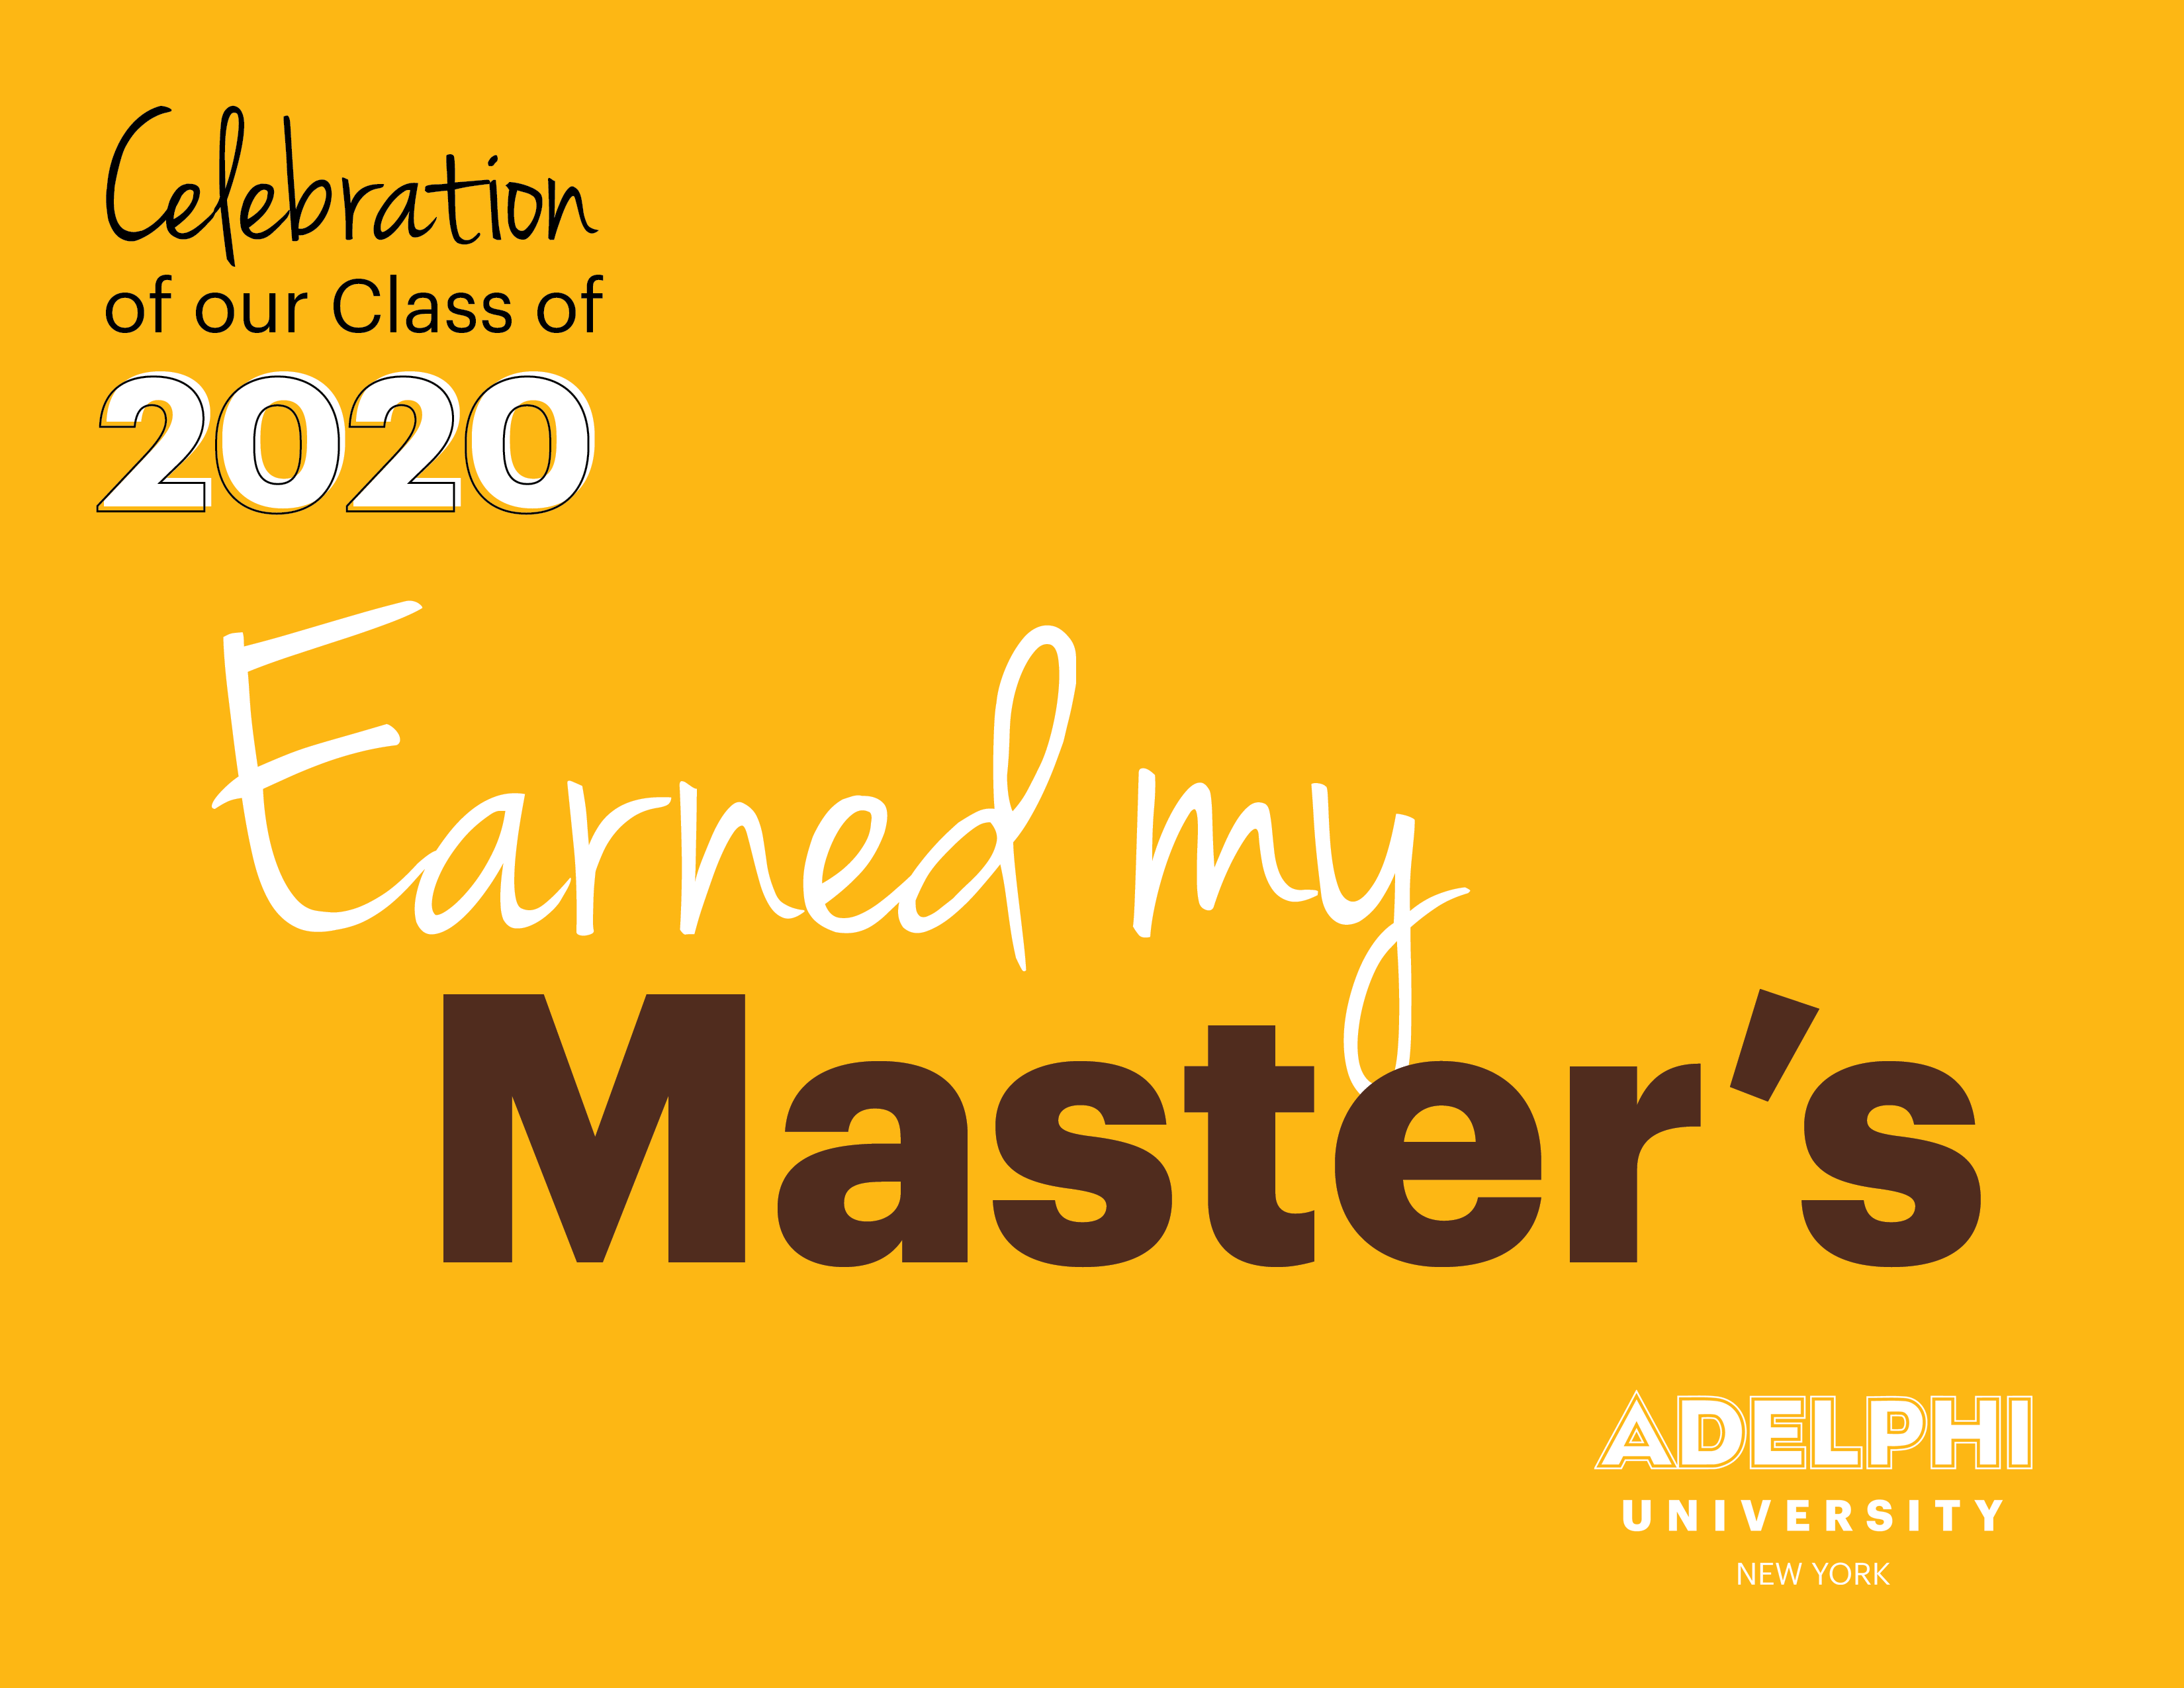 Class of 2020 - Earned My Master's